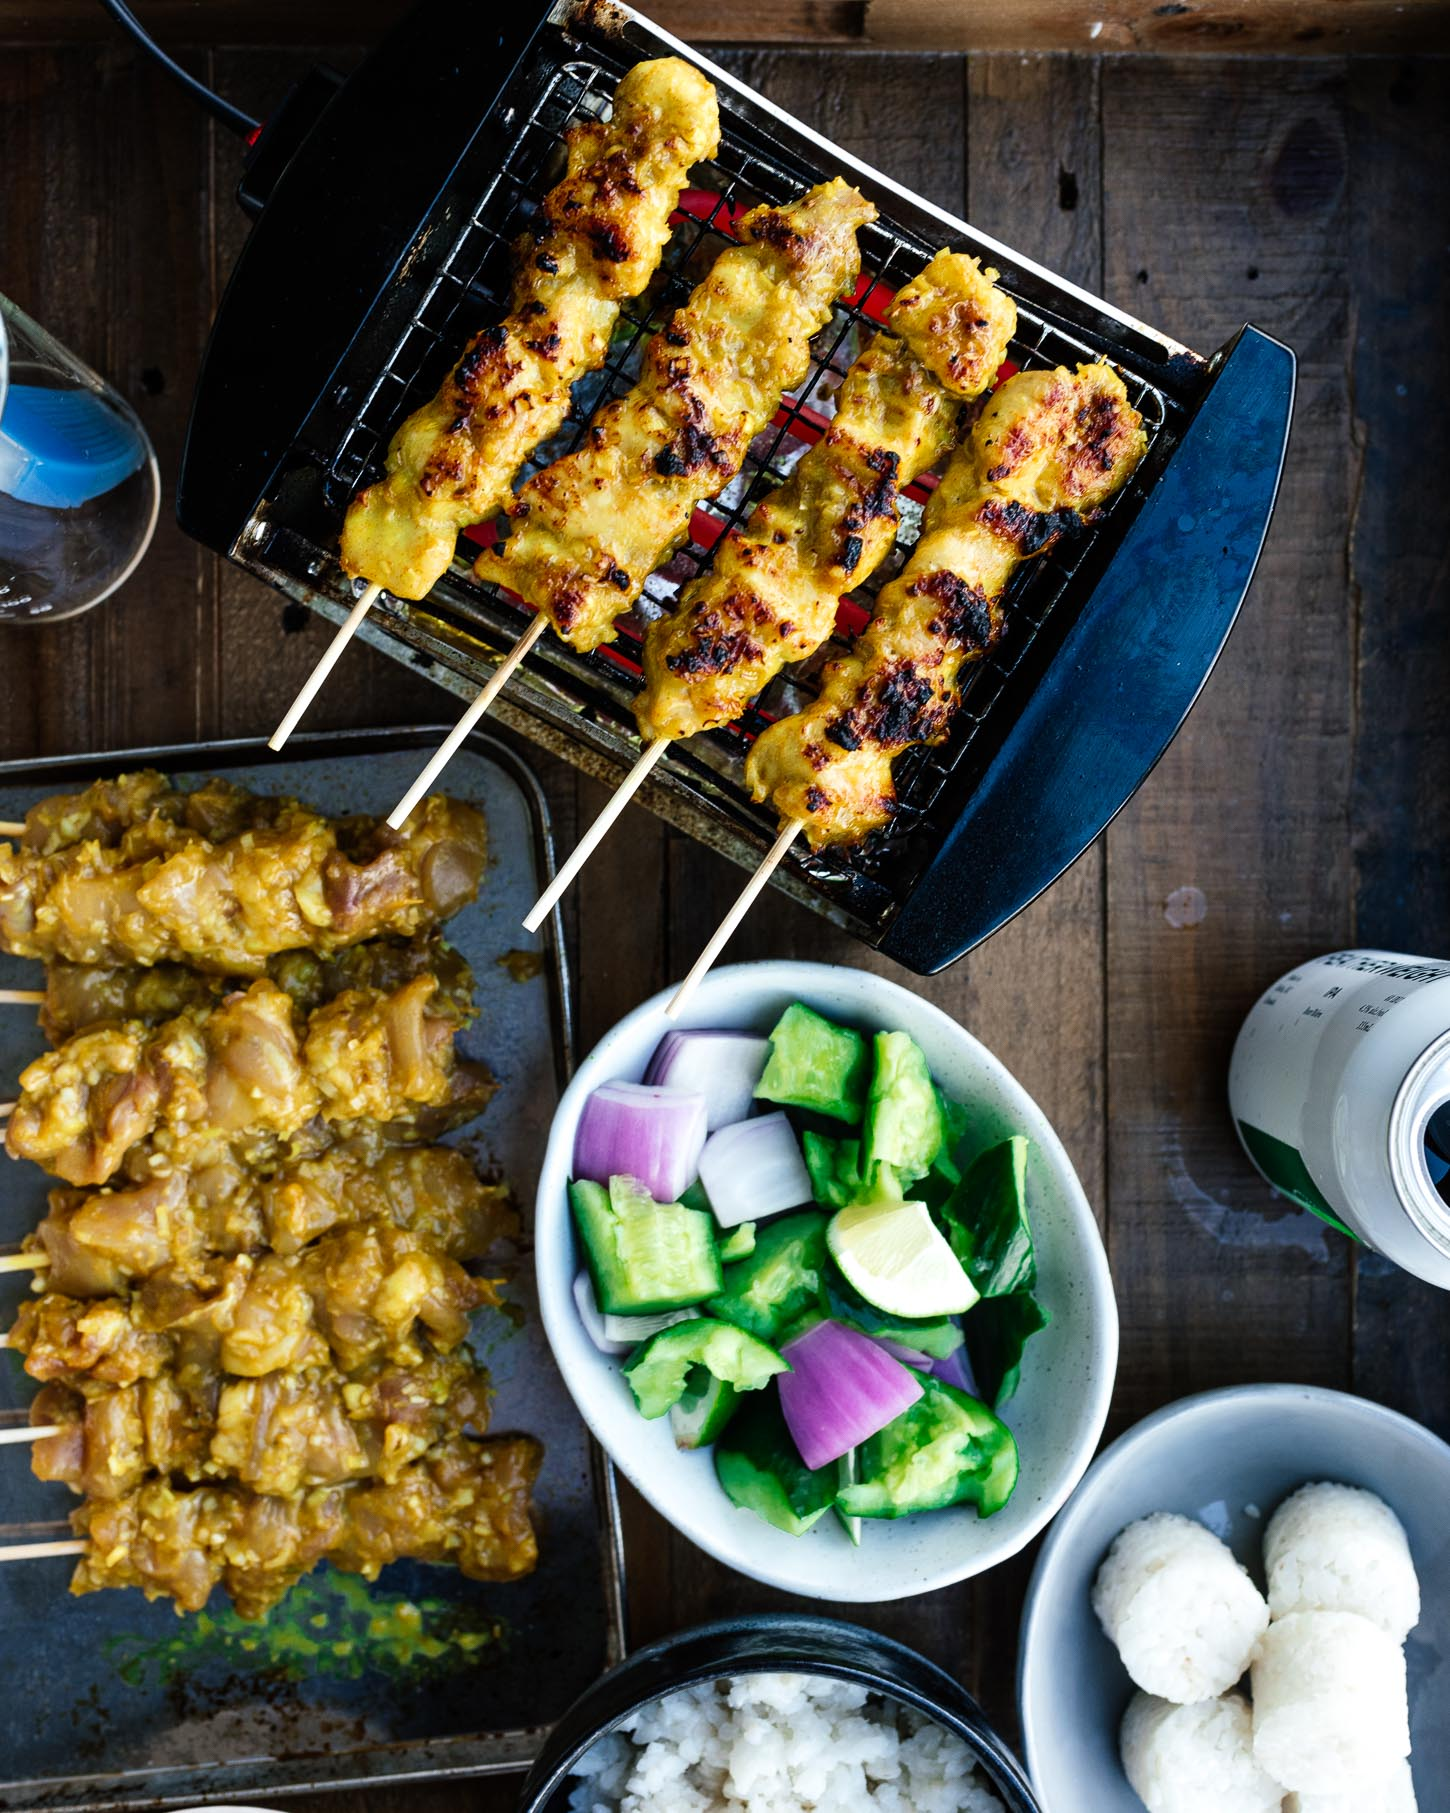 An authentic malaysian chicken satay recipe: gorgeously grilled chicken satay skewers are perfect with a sweet-and-tangy no peanut peanut sauce. #chicken #chickenrecipes #recipes #satay #kebabs #thaifood #malaysianfood